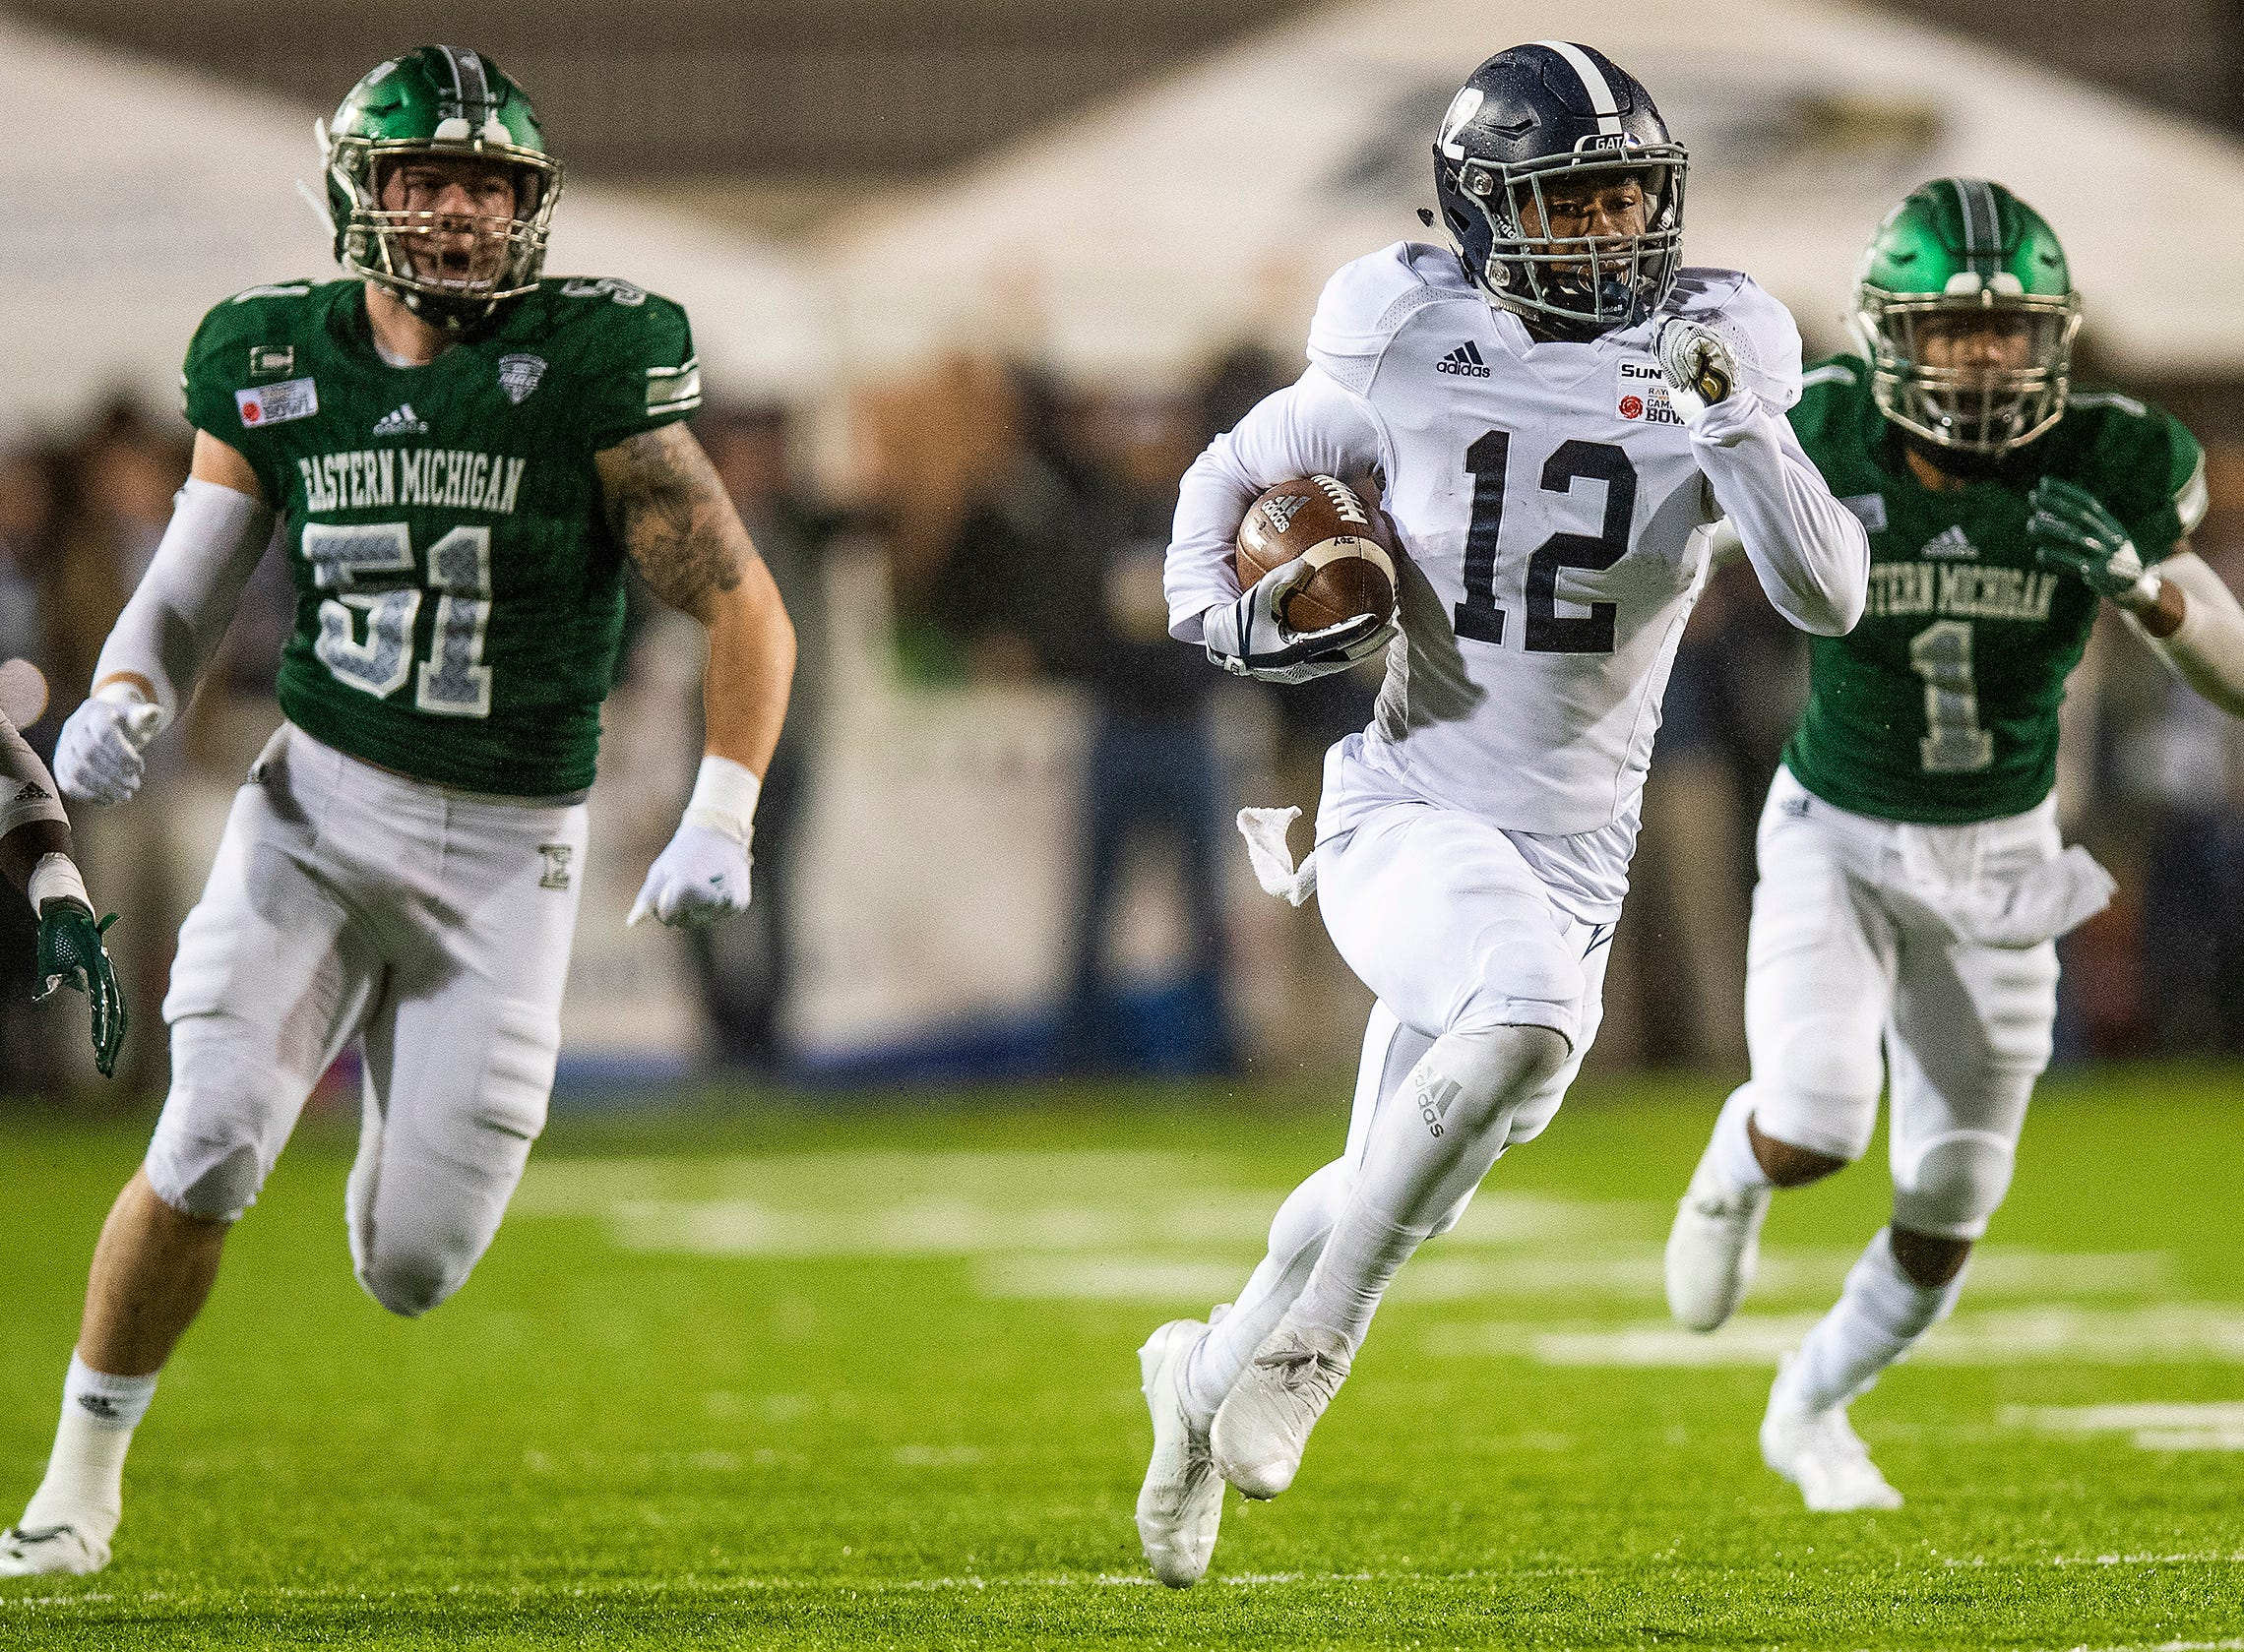 Georgia Southern running back Wesley Kennedy, III, (12)  breaks free for a big gain against Eastern Michigan during first half action in the Raycom Media  Camellia Bowl held at Cramton Bowl in Montgomery, Ala., on Saturday December 15, 2018.